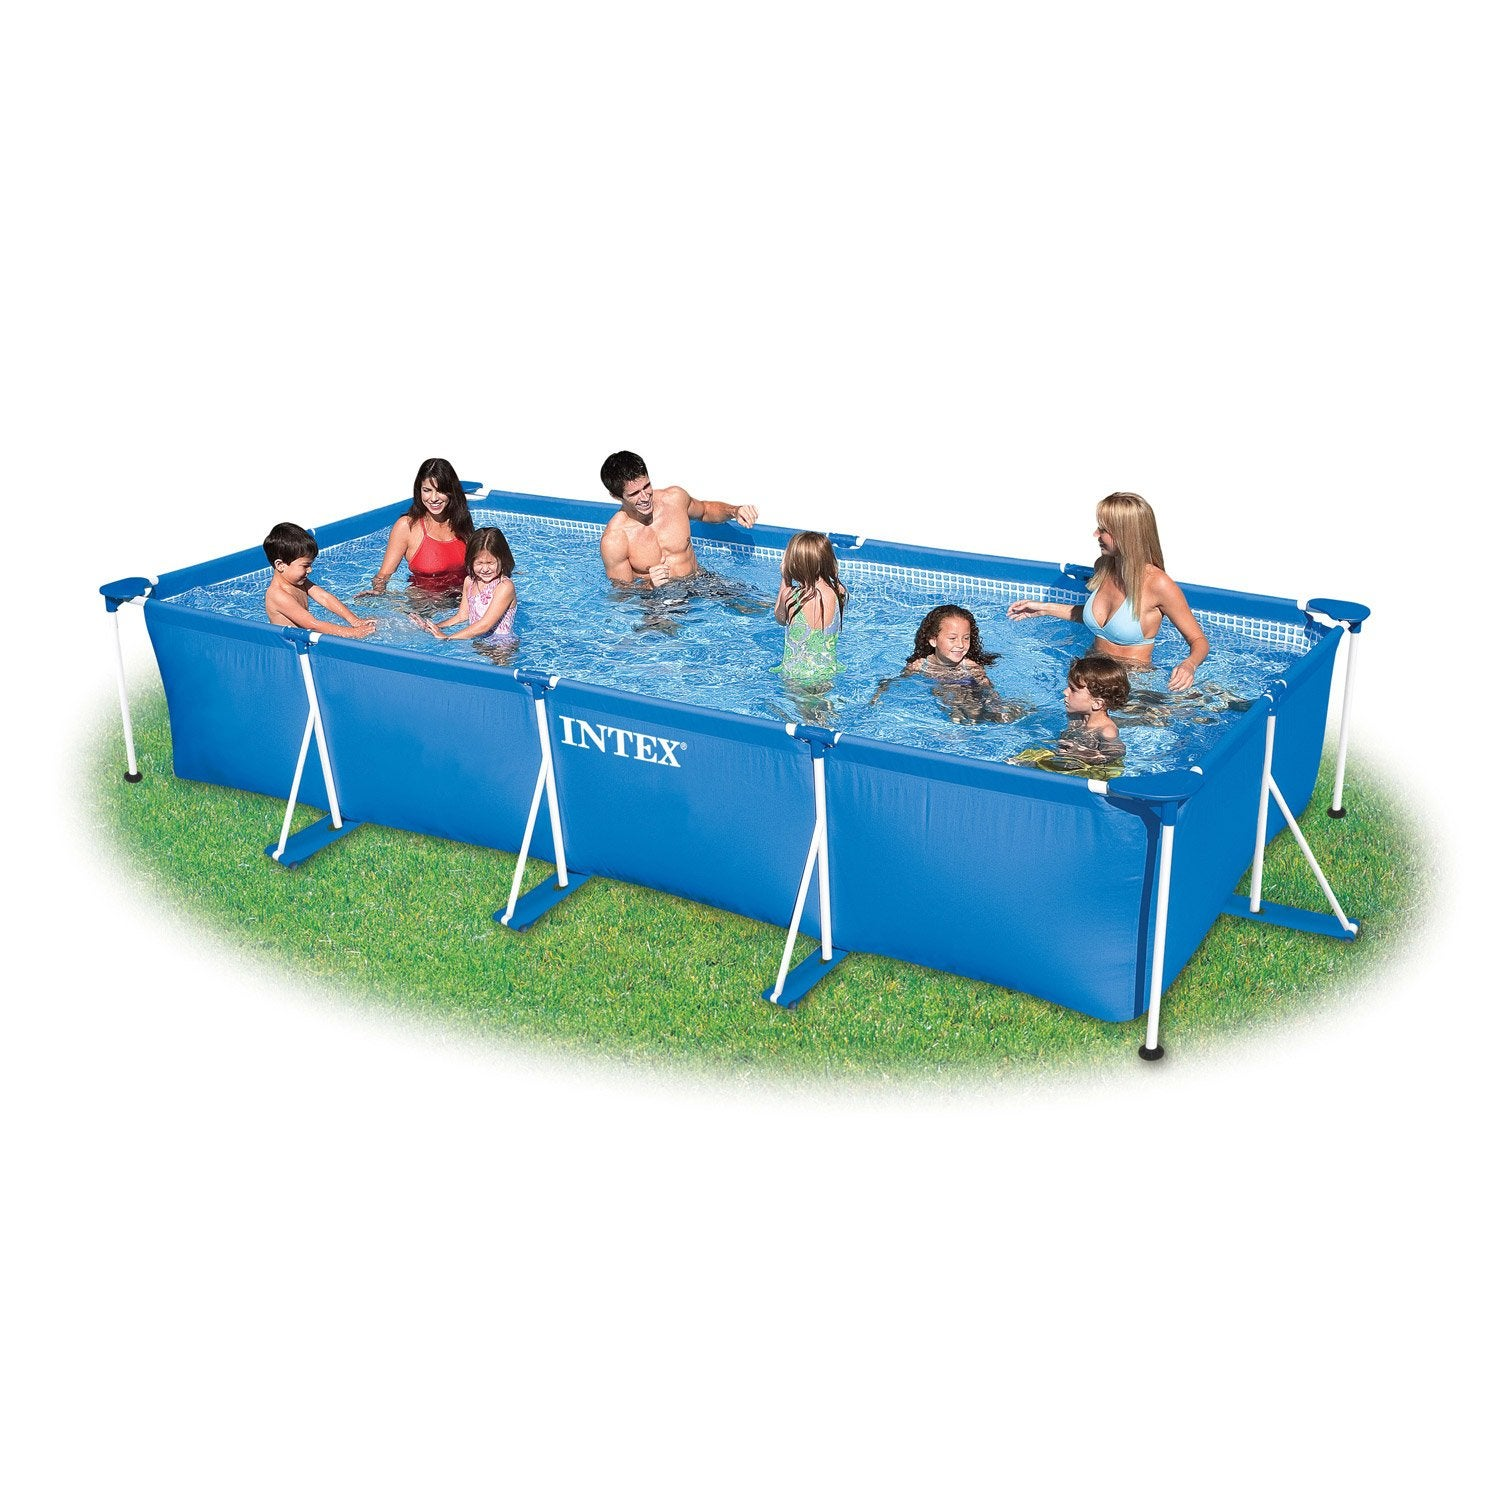 Piscine hors sol autoportante tubulaire intex l x l for Prix des piscines